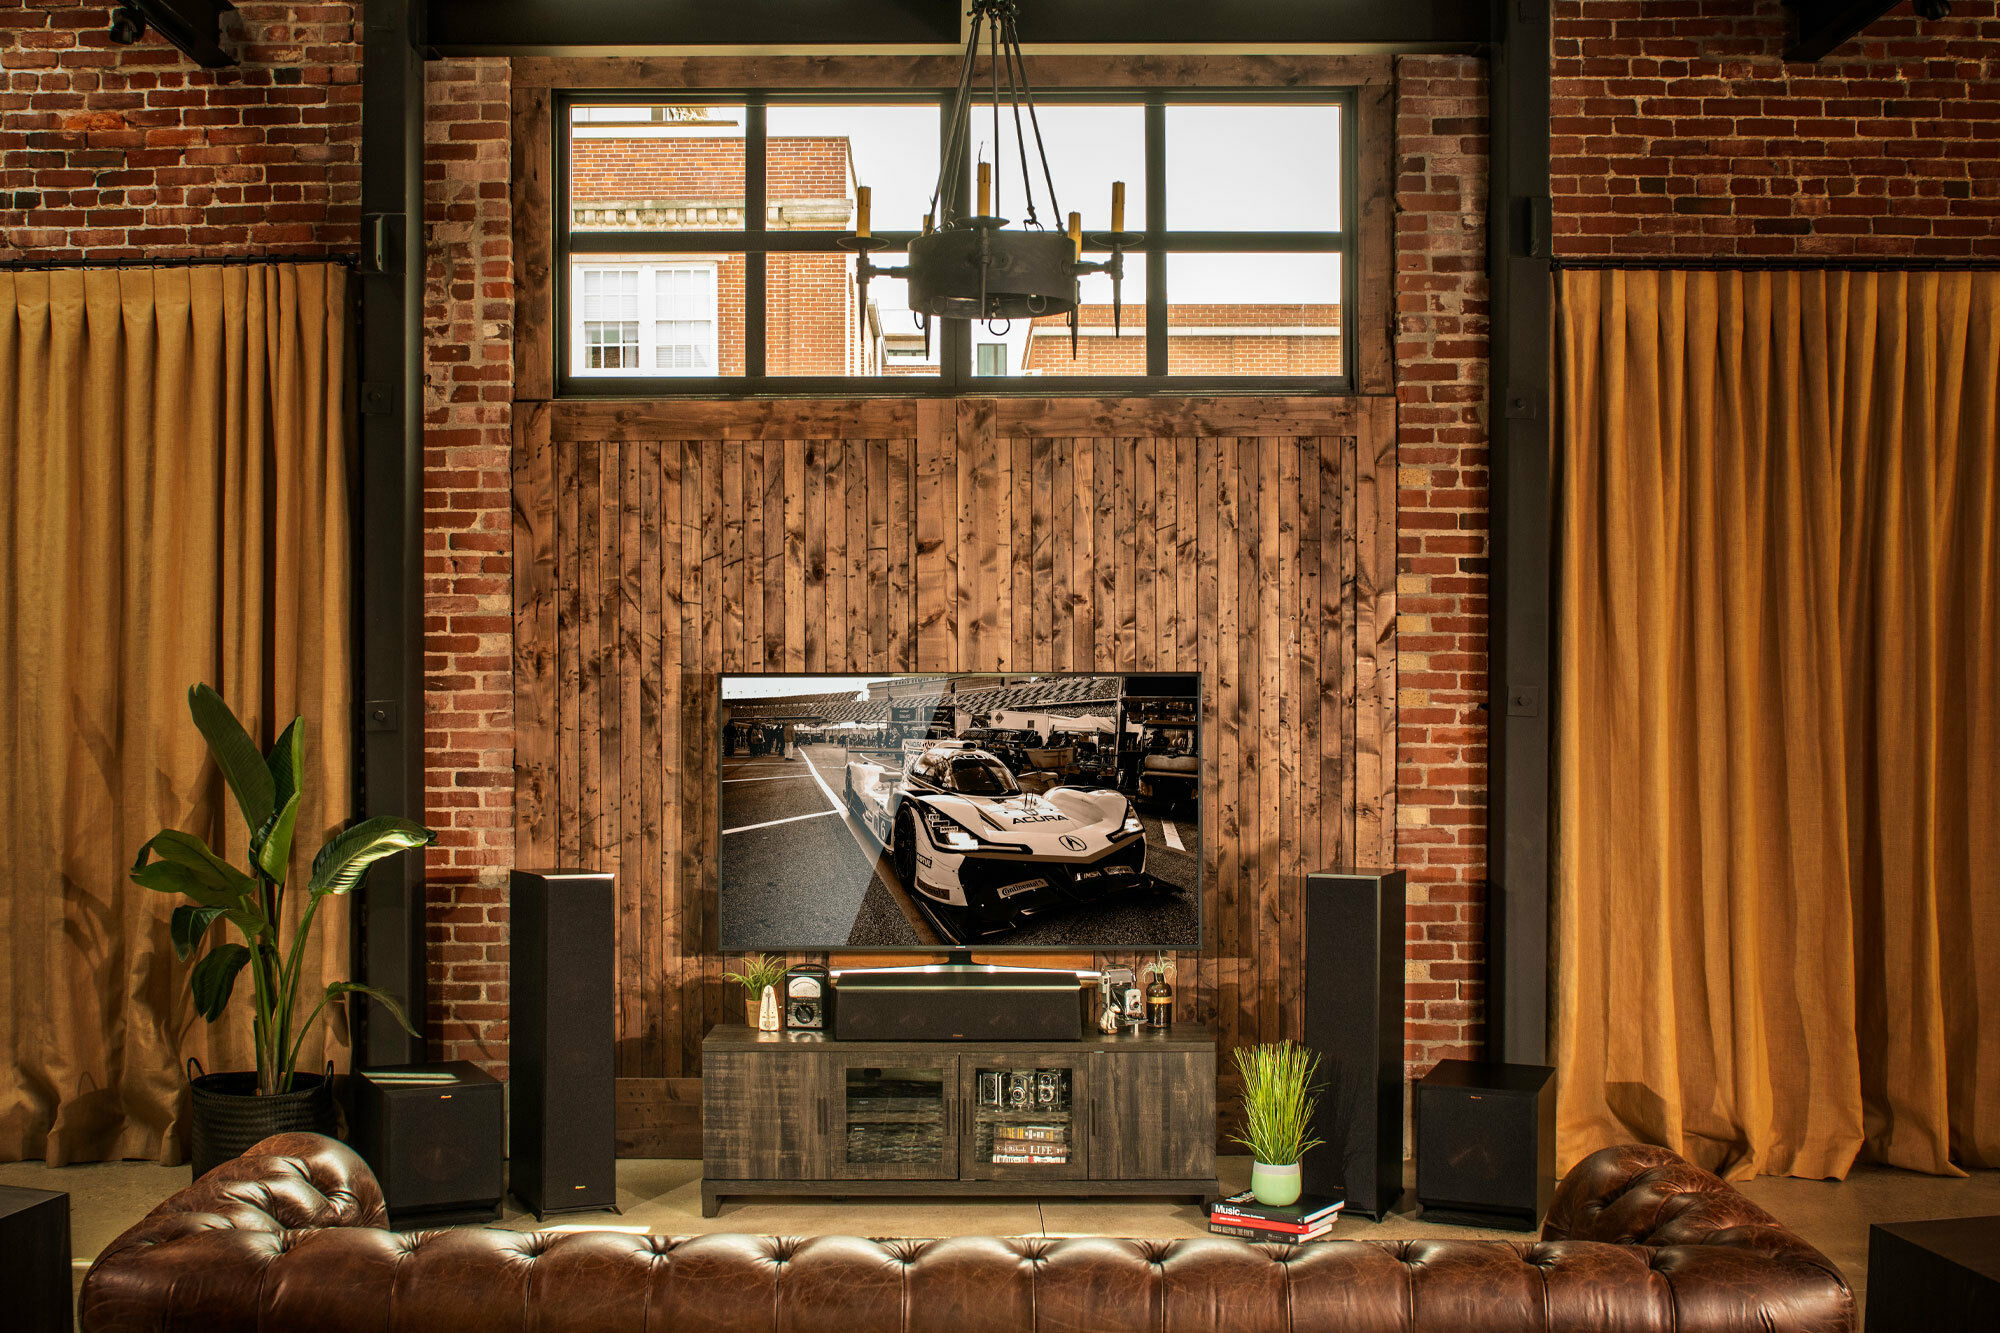 Klipsch Reference Premiere floorstanding speakers and subwoofer